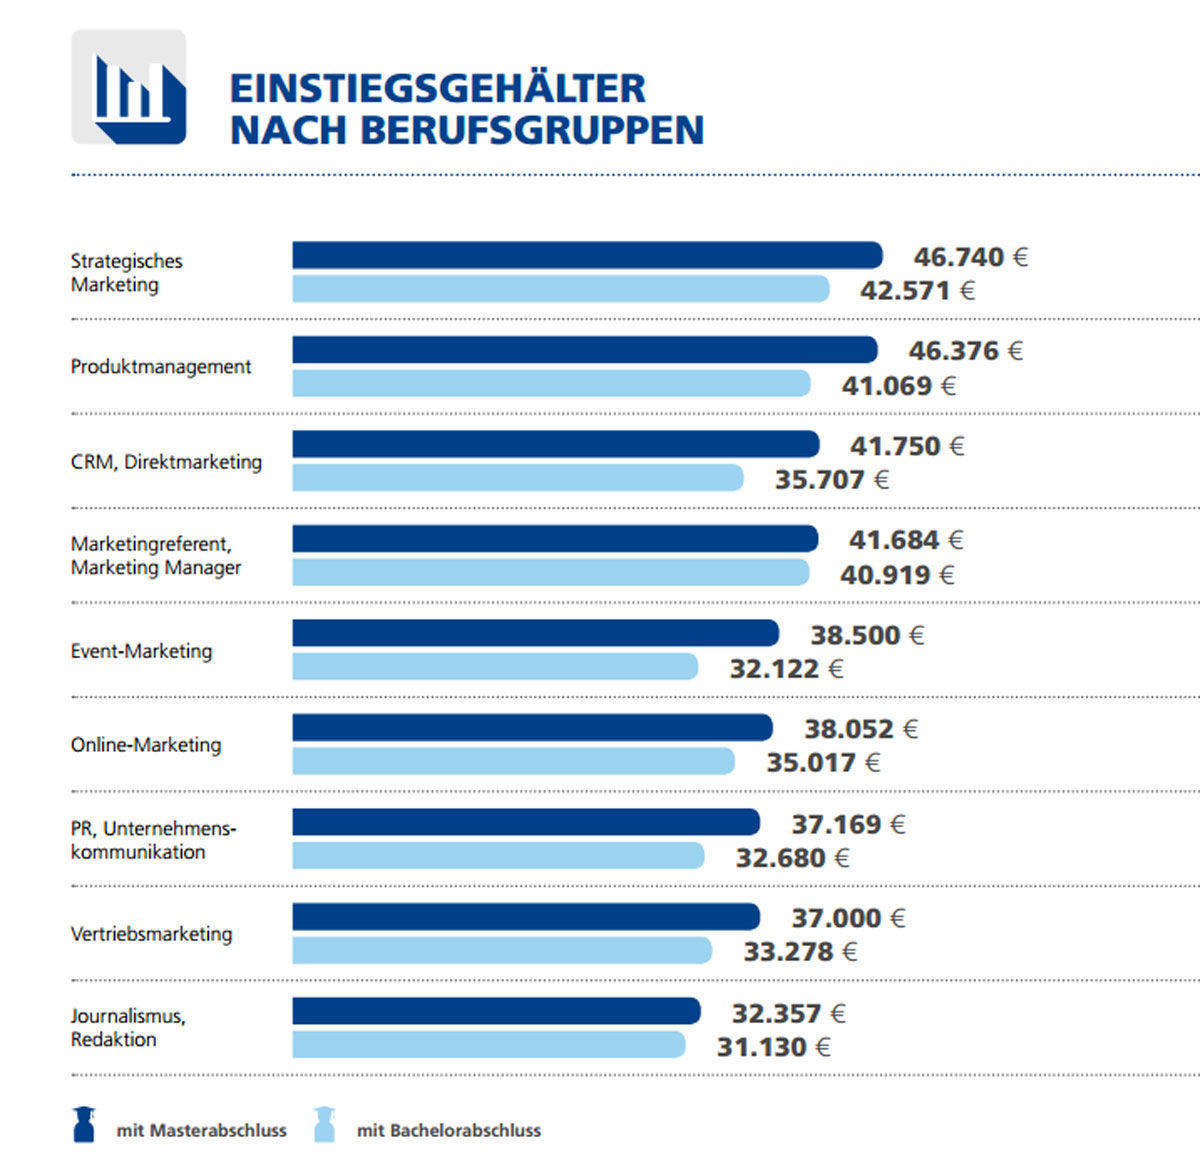 Das verdienen Marketing-Einsteiger nach dem Studium. (Stepstone)